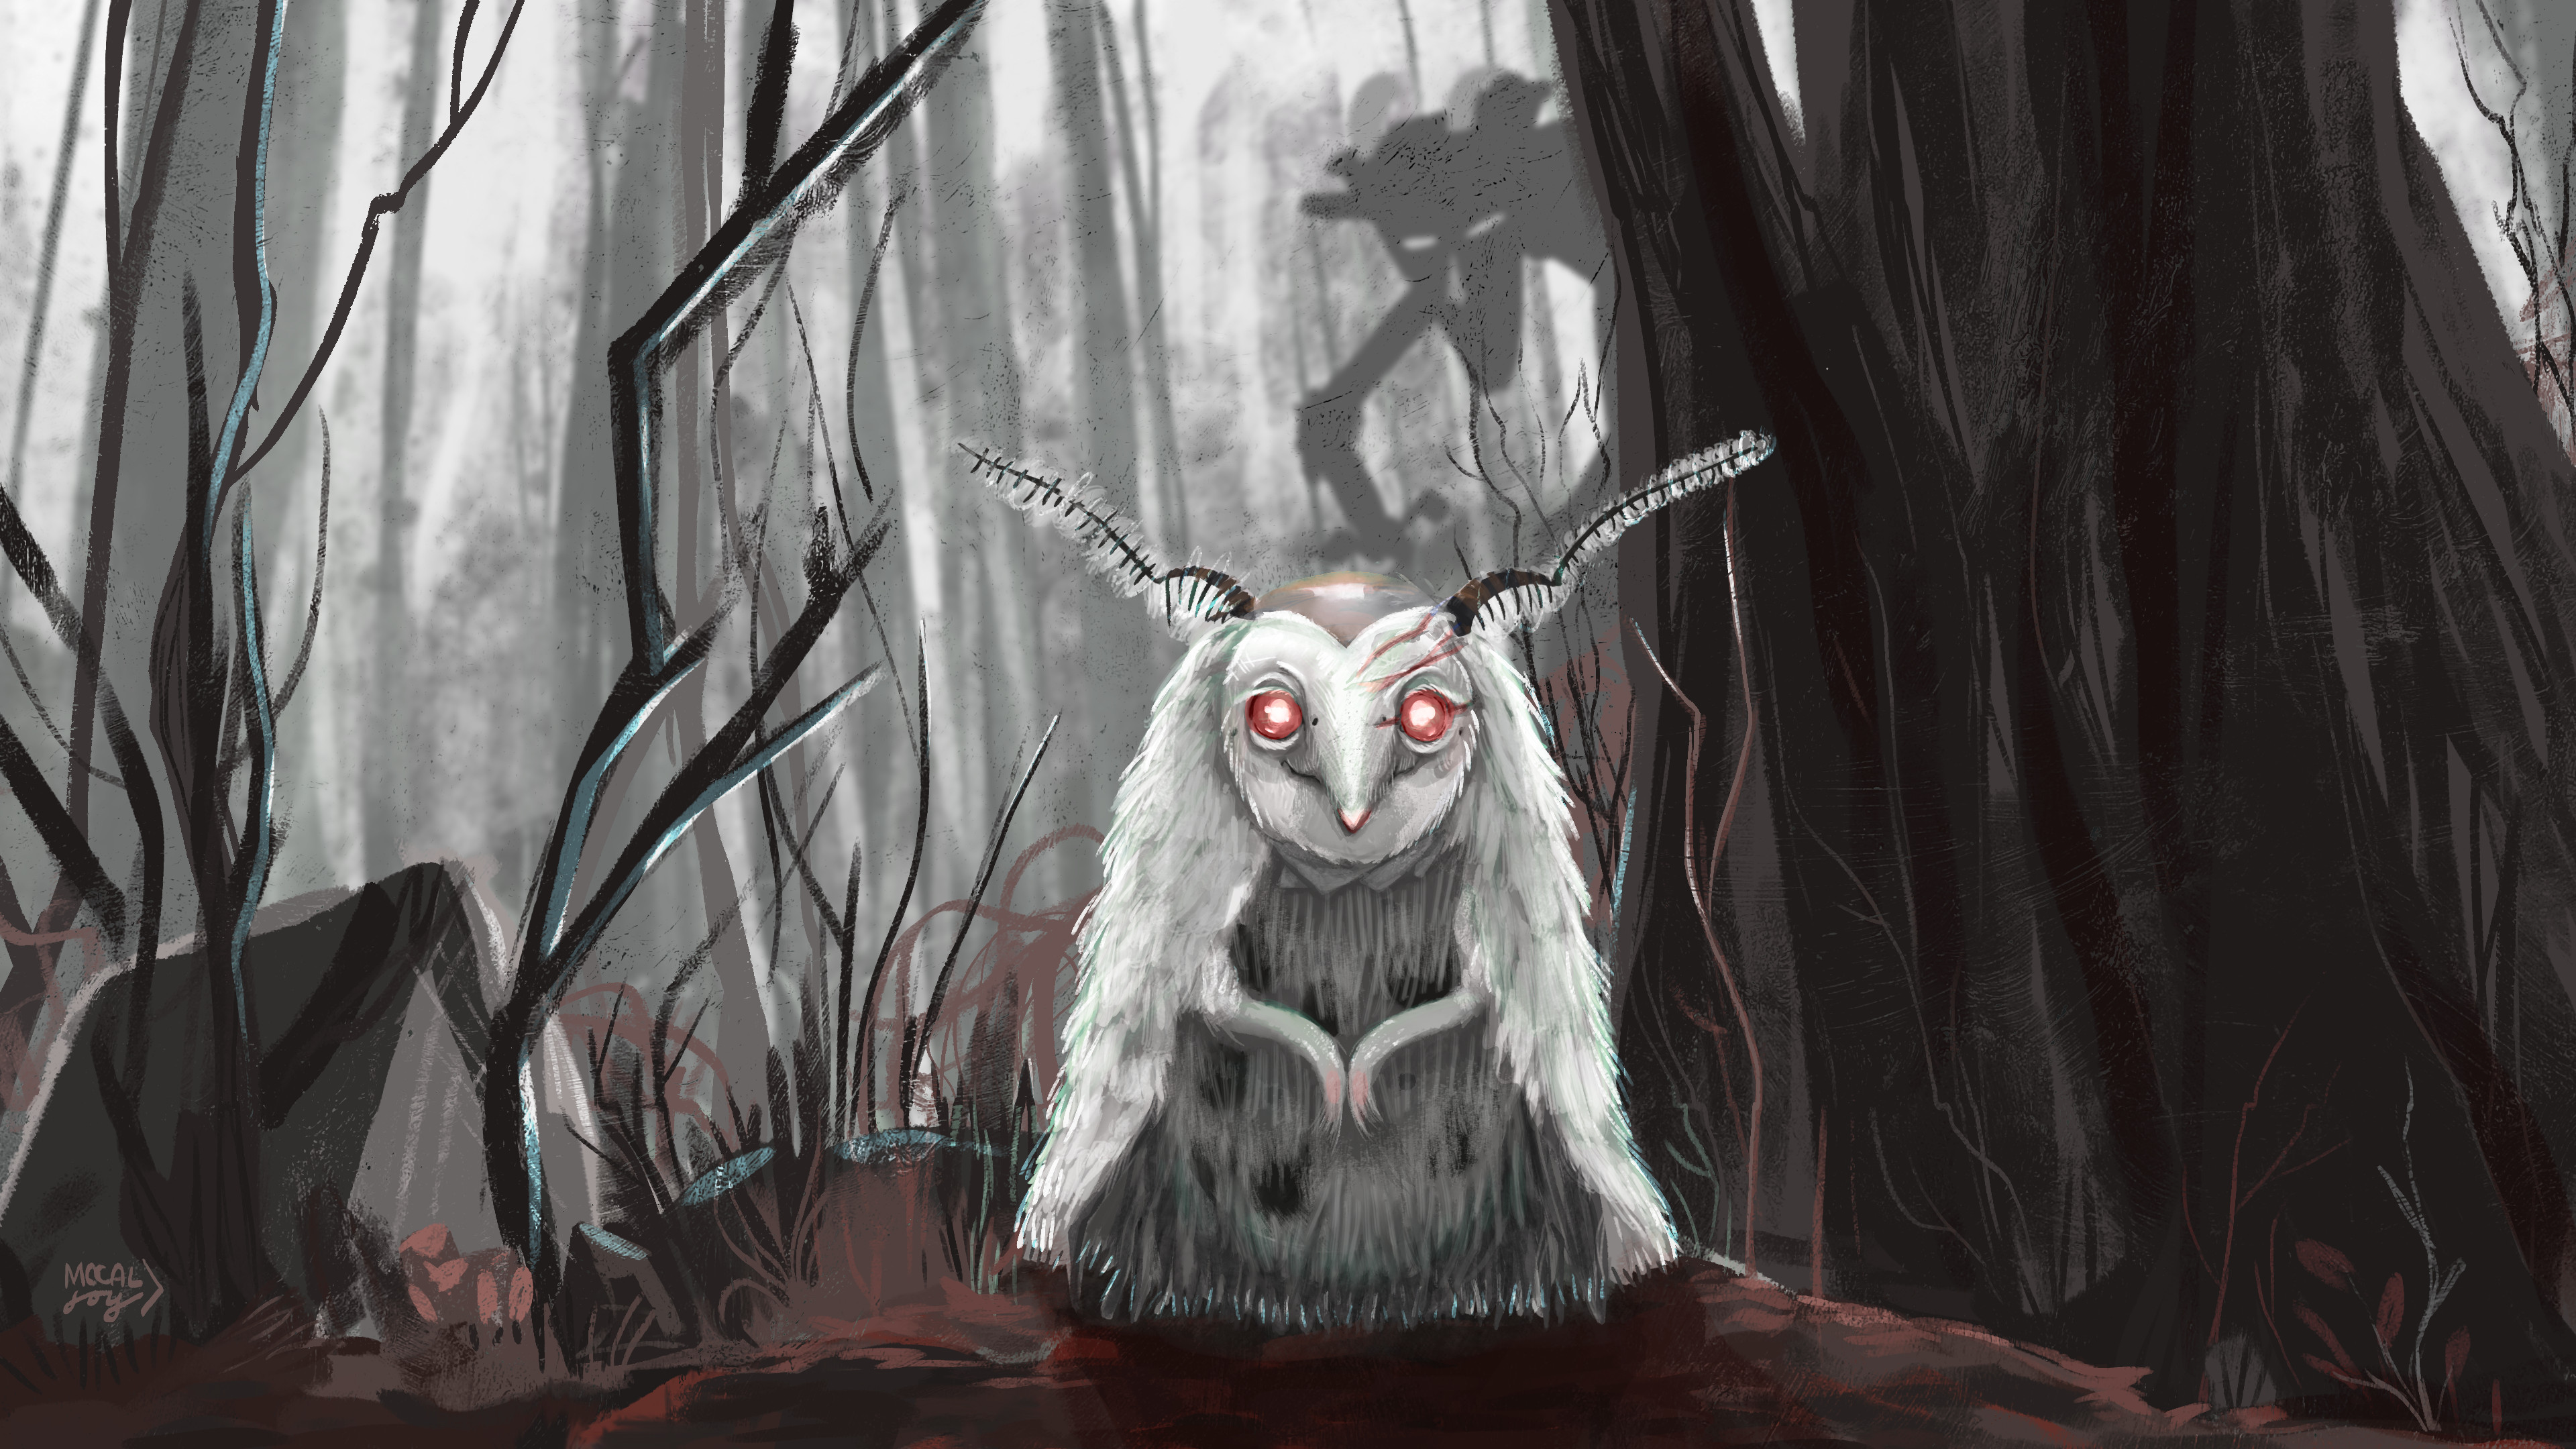 Creature 01, or Poo, as I've been calling her. Painted into her forest realm where she was born out of.